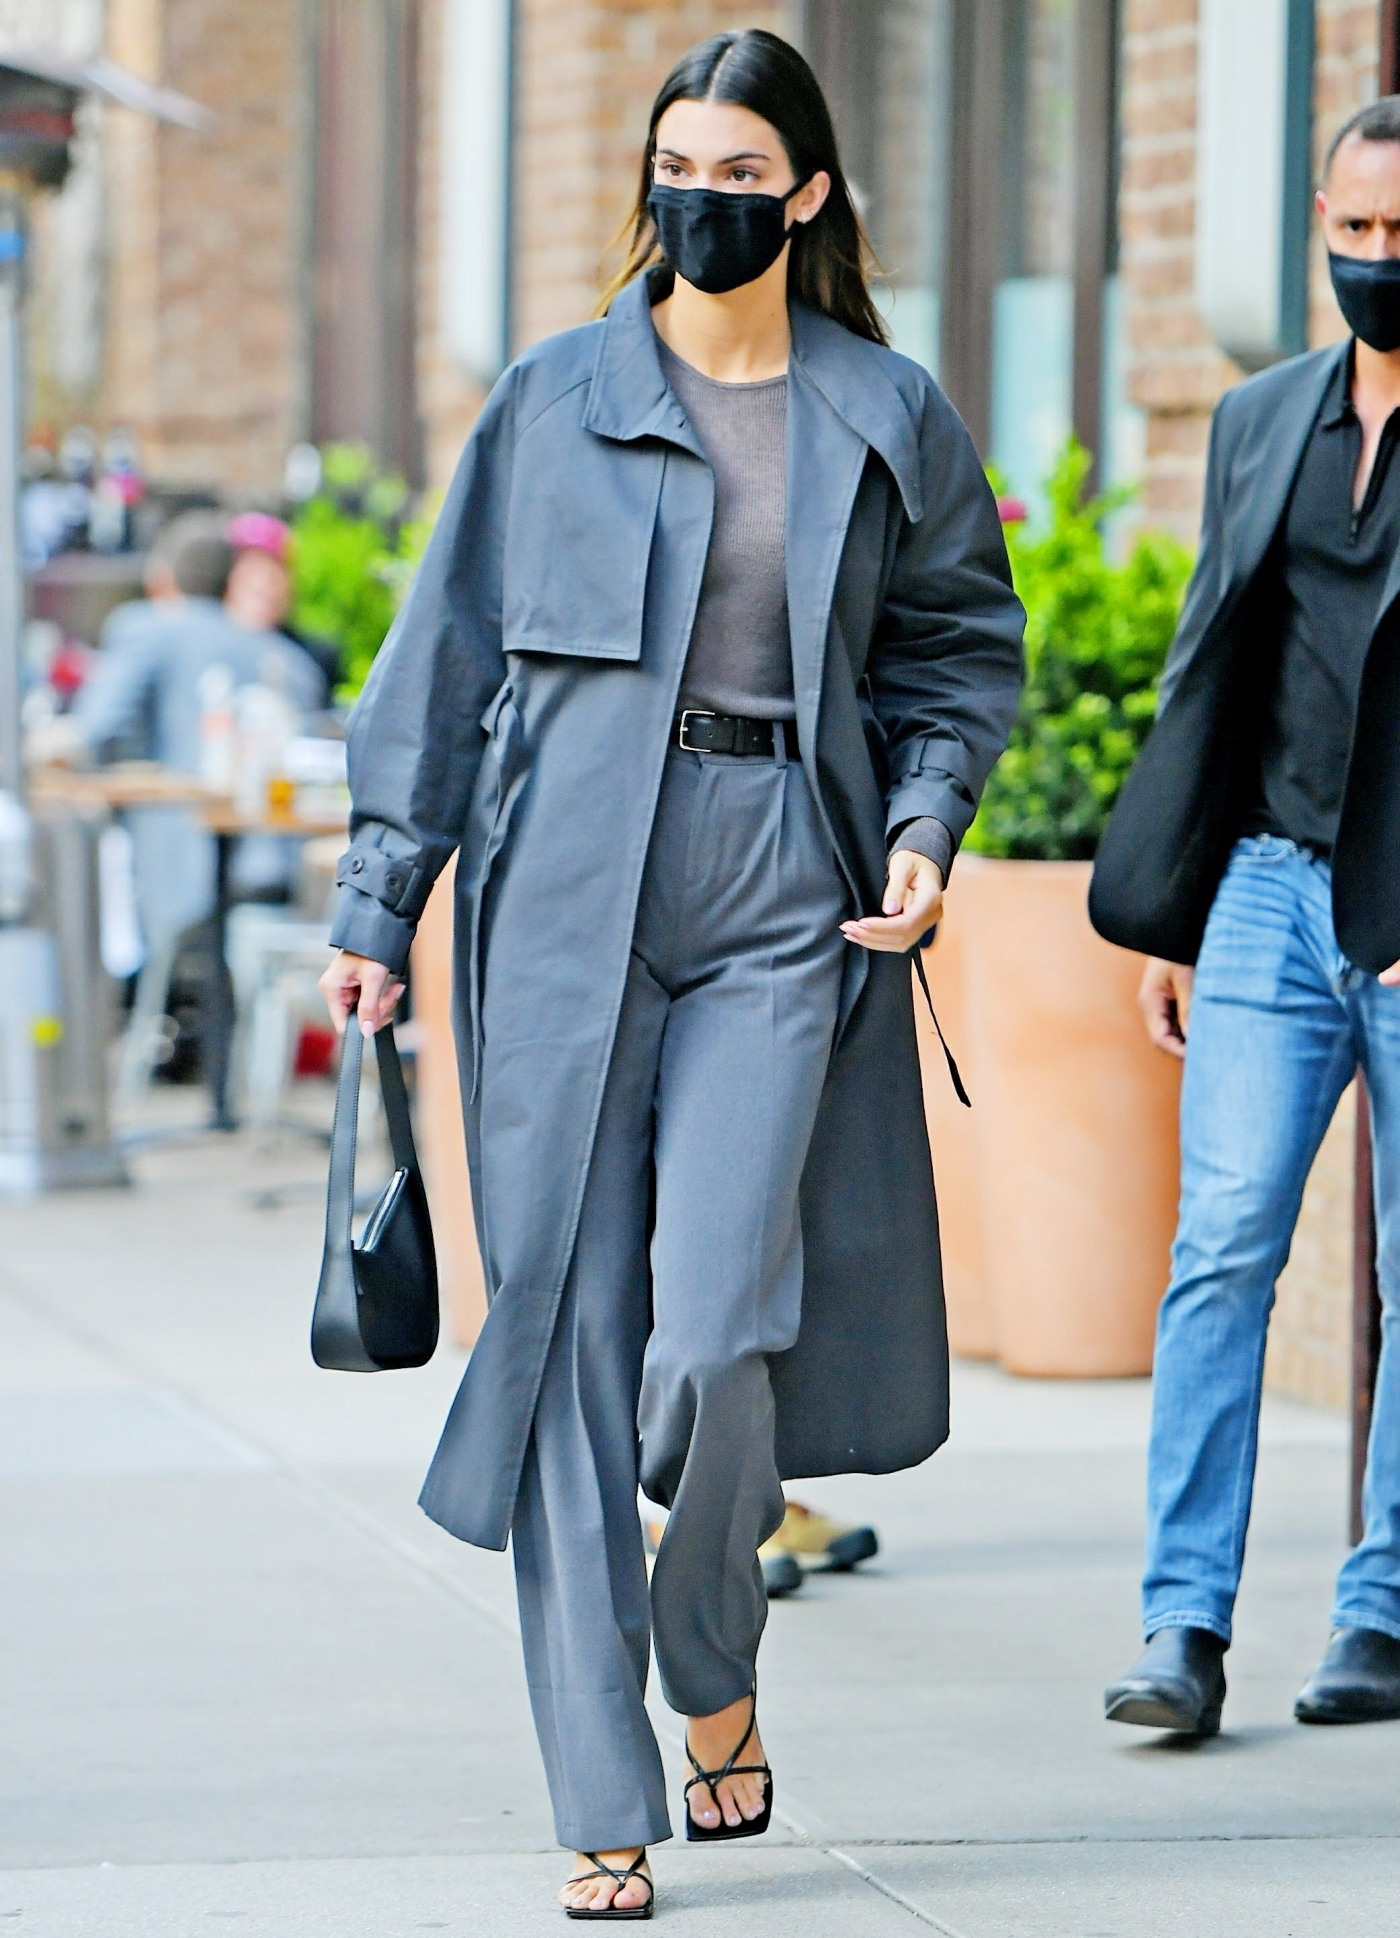 Kendall Jenner dons an all-grey ensemble heading to dinner in NYC